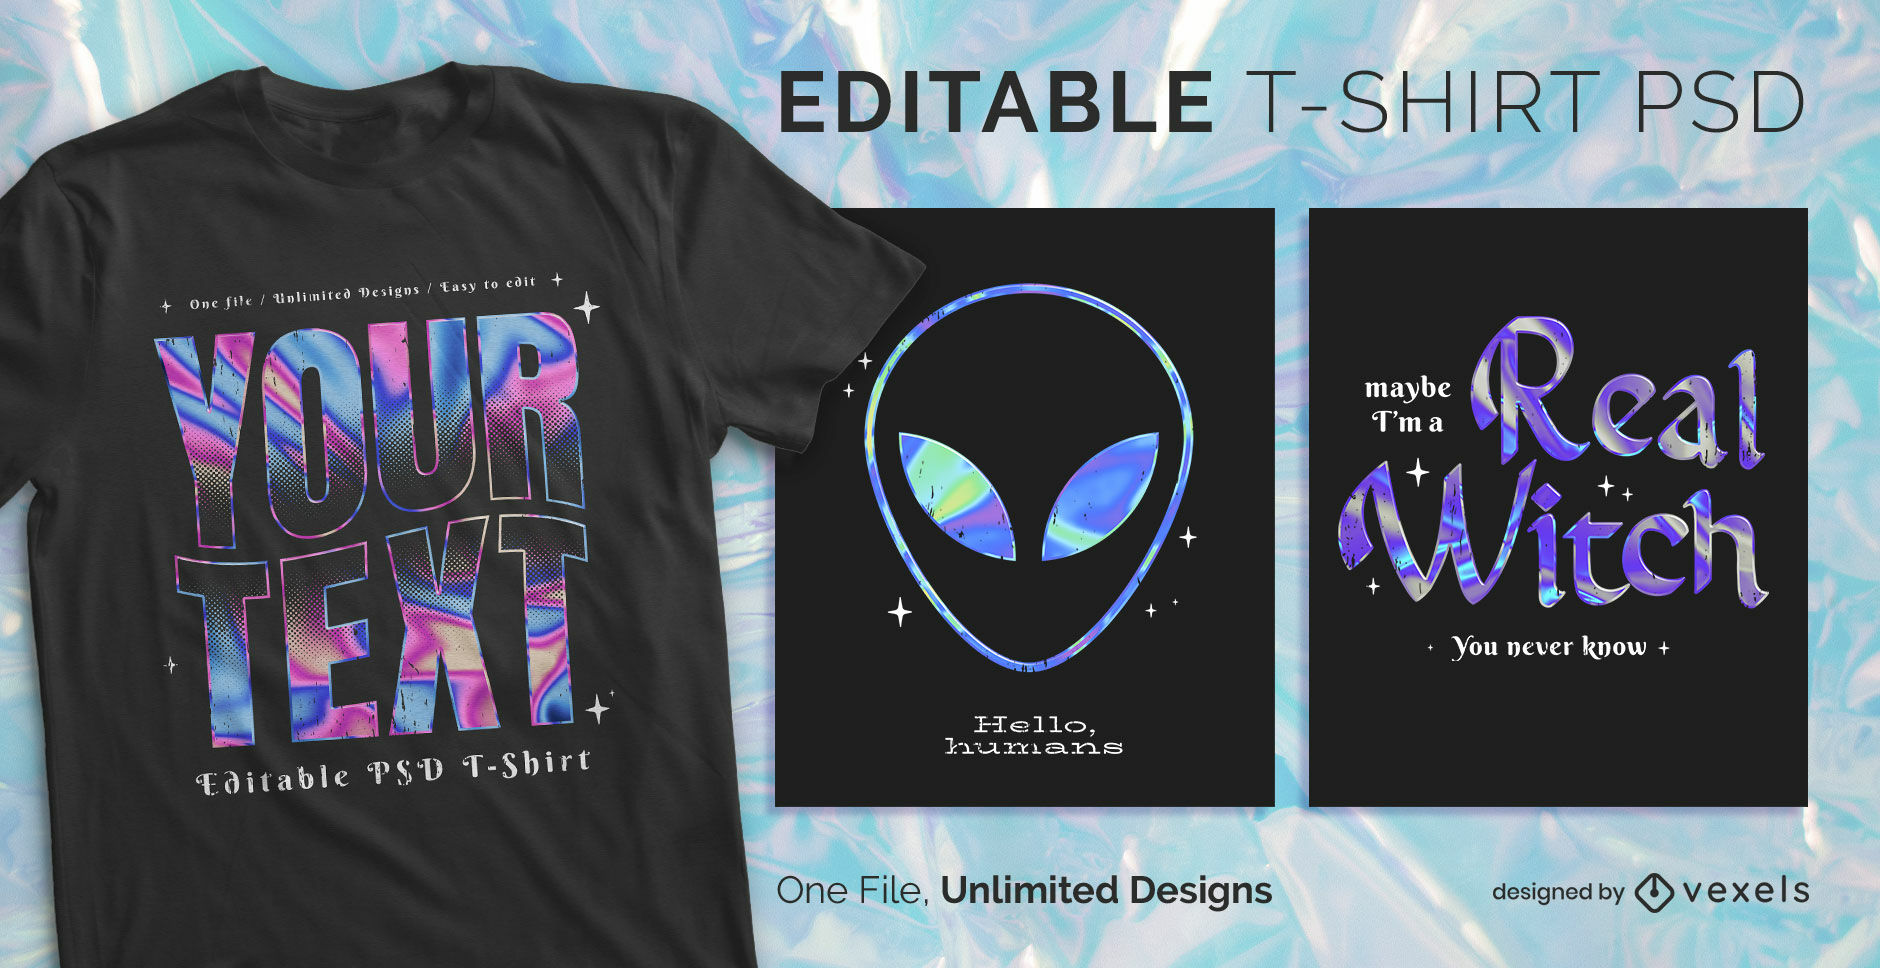 Holographic text scalable psd t-shirt design